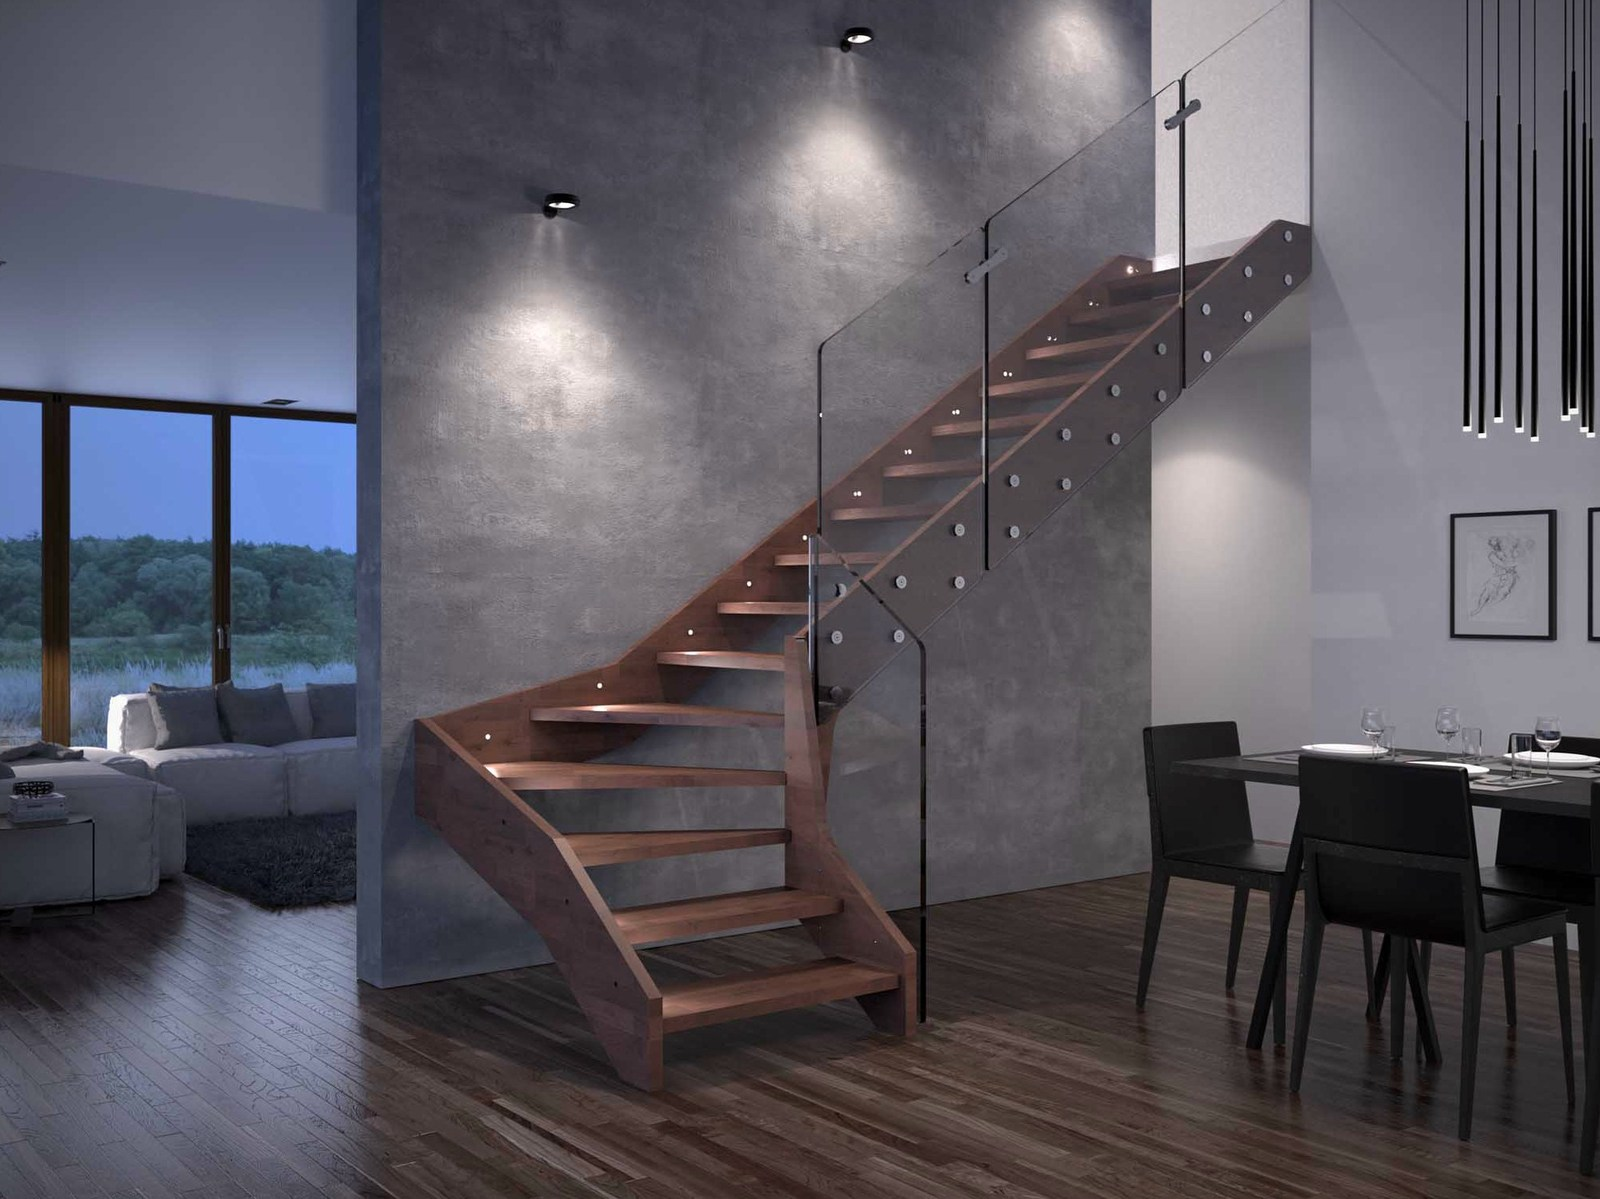 Captivating View In Gallery Contemporary  Open Wooden Frame Staircases With Glass Railing  Home Design Ideas